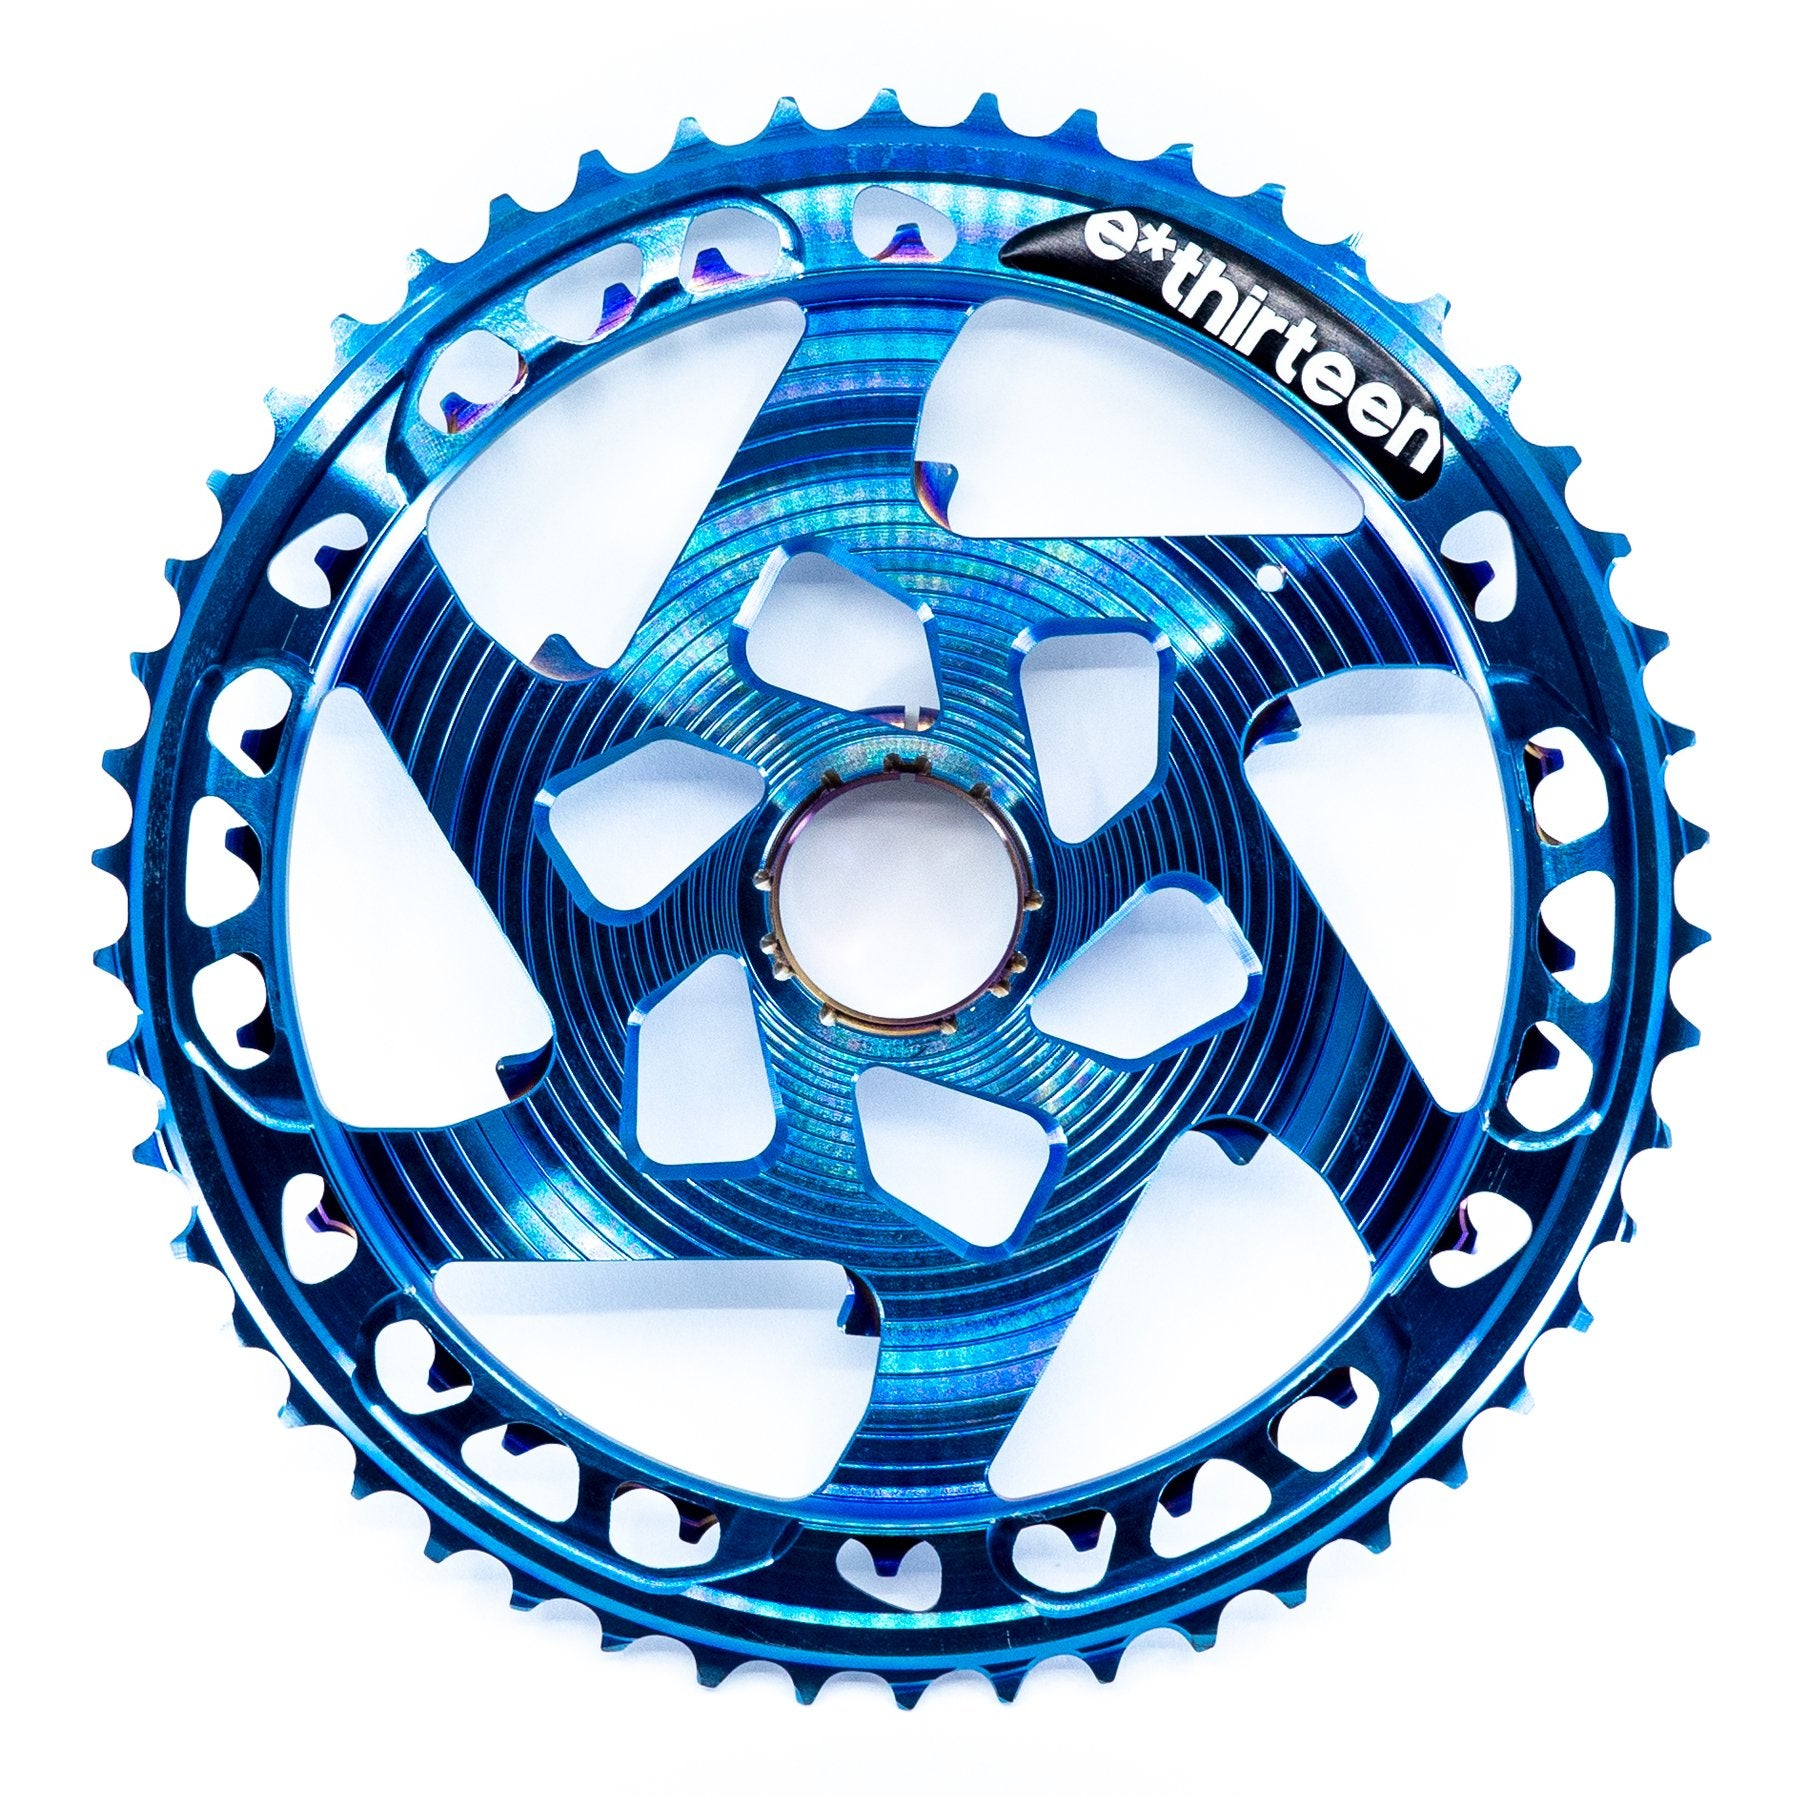 Helix R 11-Speed Cassette Replacement Clusters - AVAILABLE DECEMBER 1, 2020